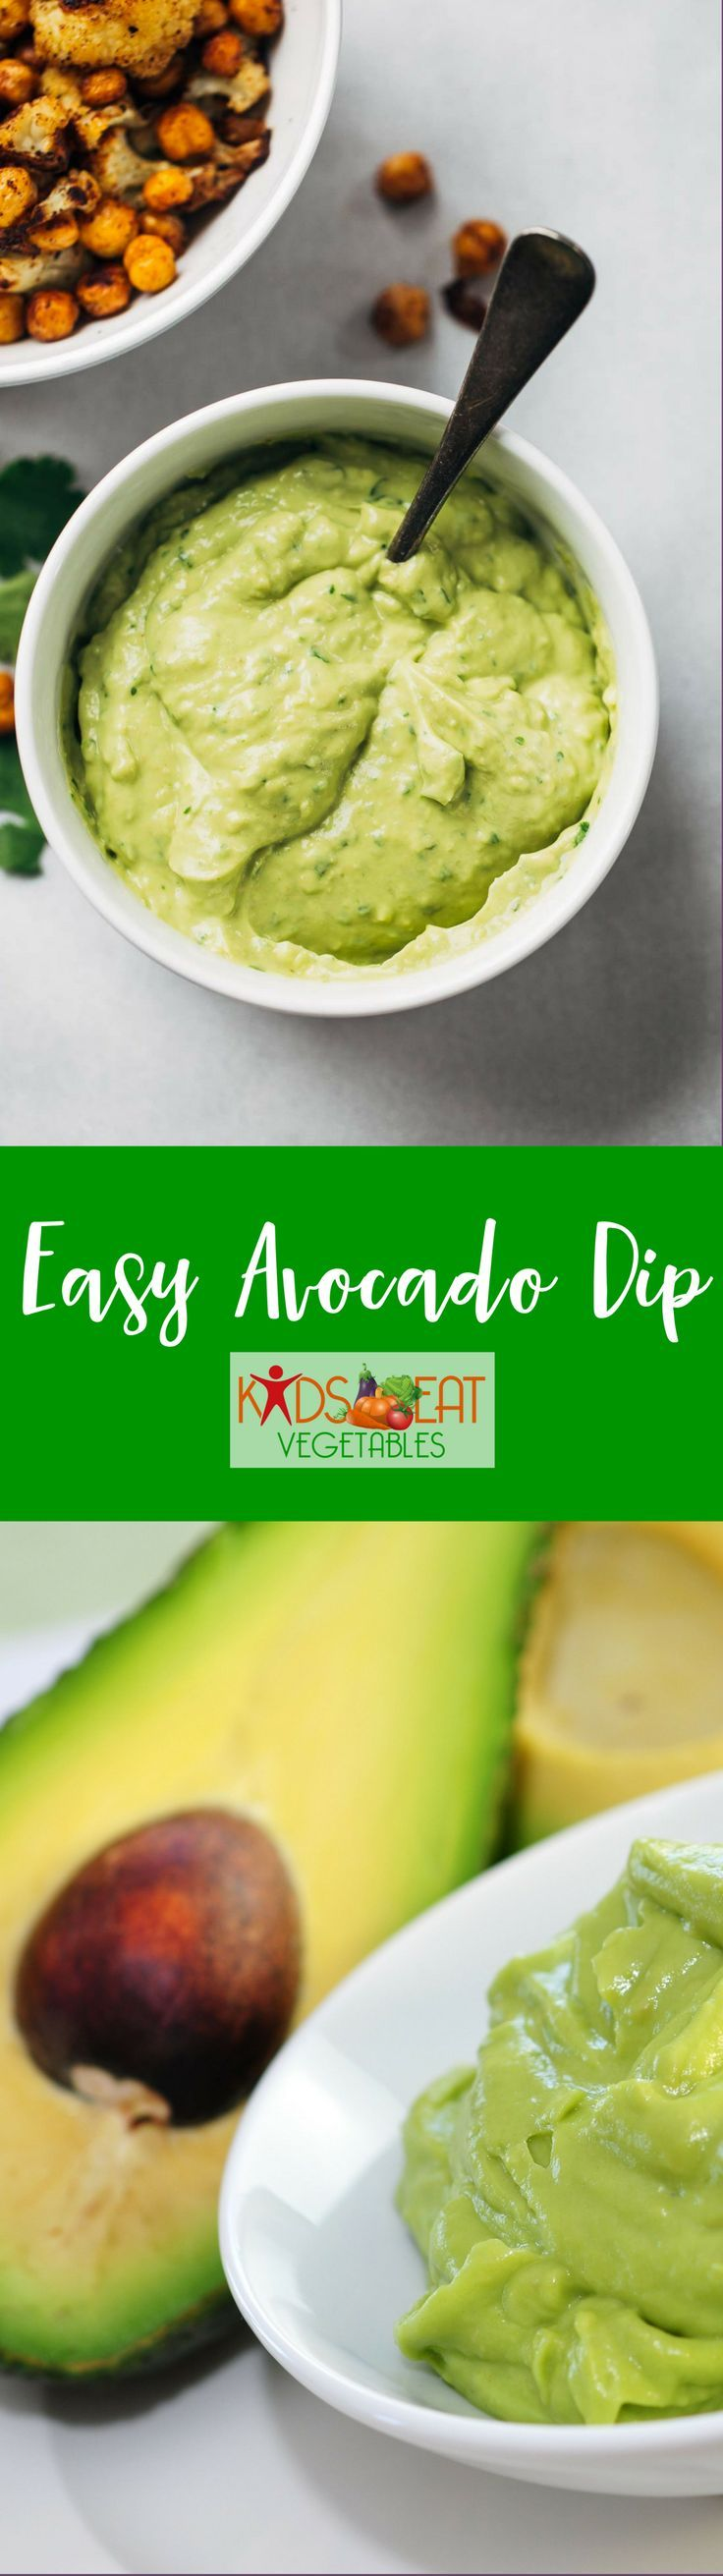 This Easy Avocado Dip is perfect for just about anything. Serve it with chips, tacos, burgers, grilled meats, veggies, or burrito bowls.